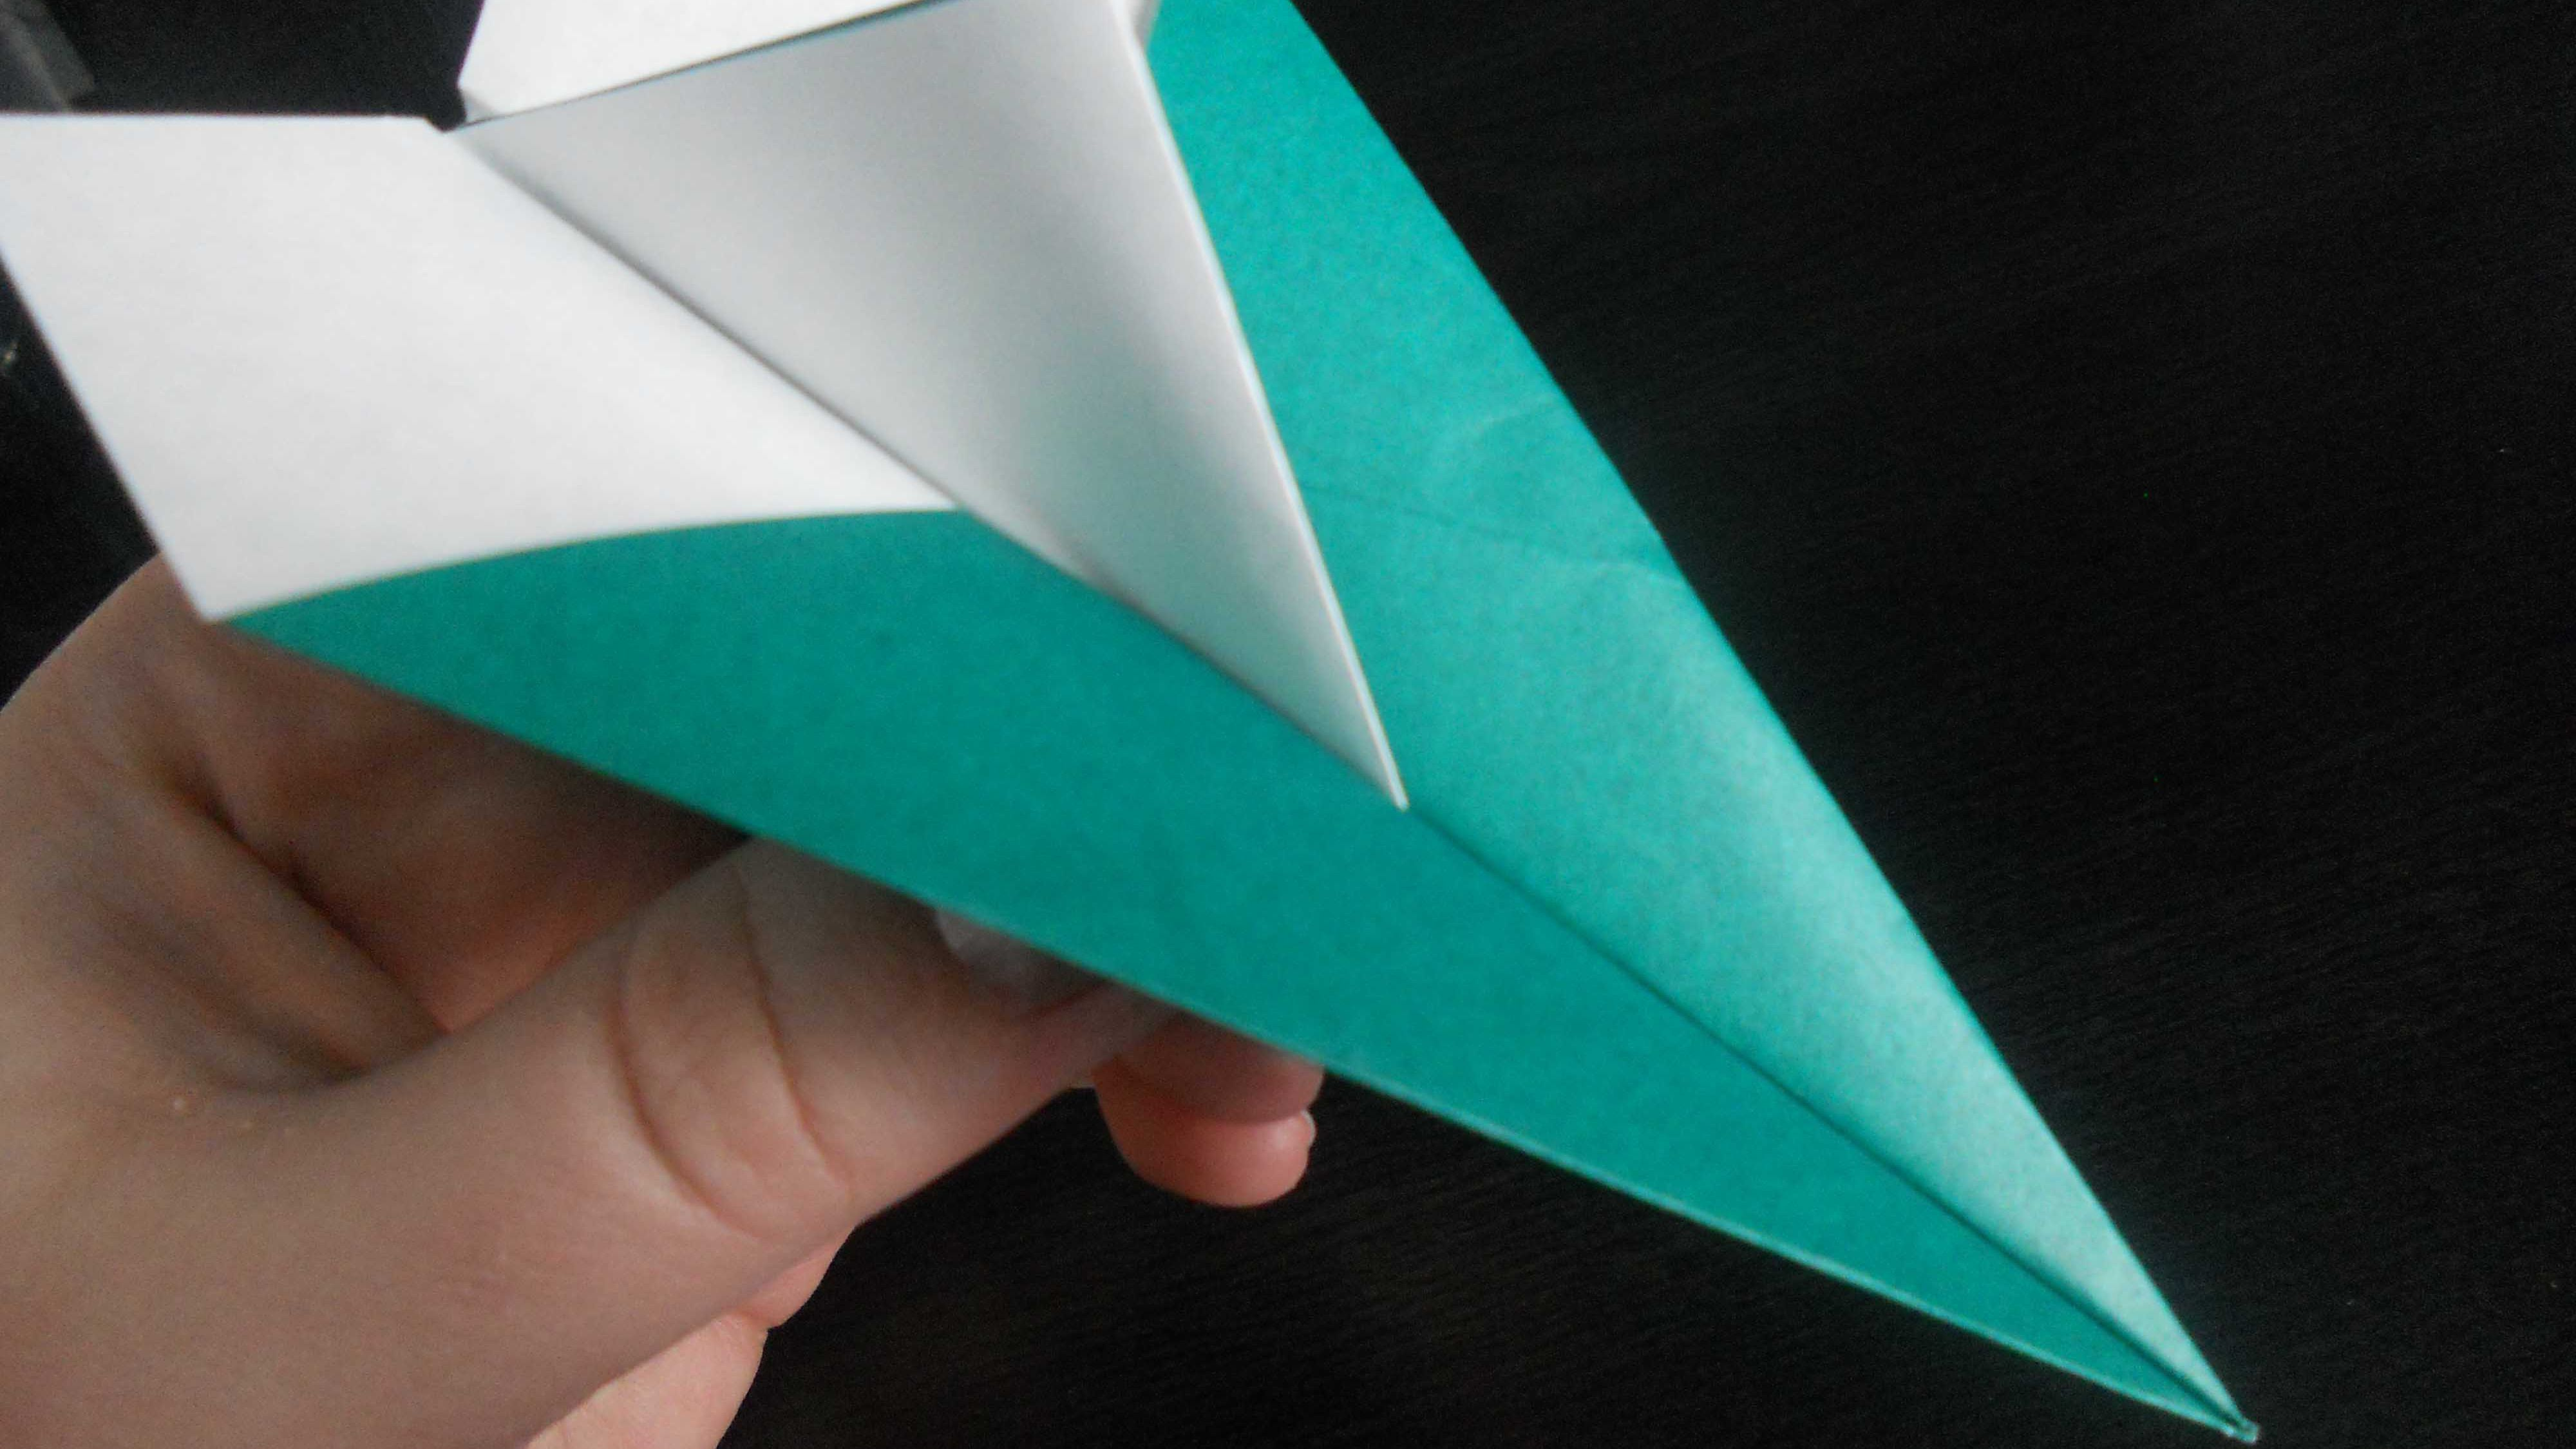 005 Impressive Printable A4 Paper Plane Design High Resolution  DesignsFull